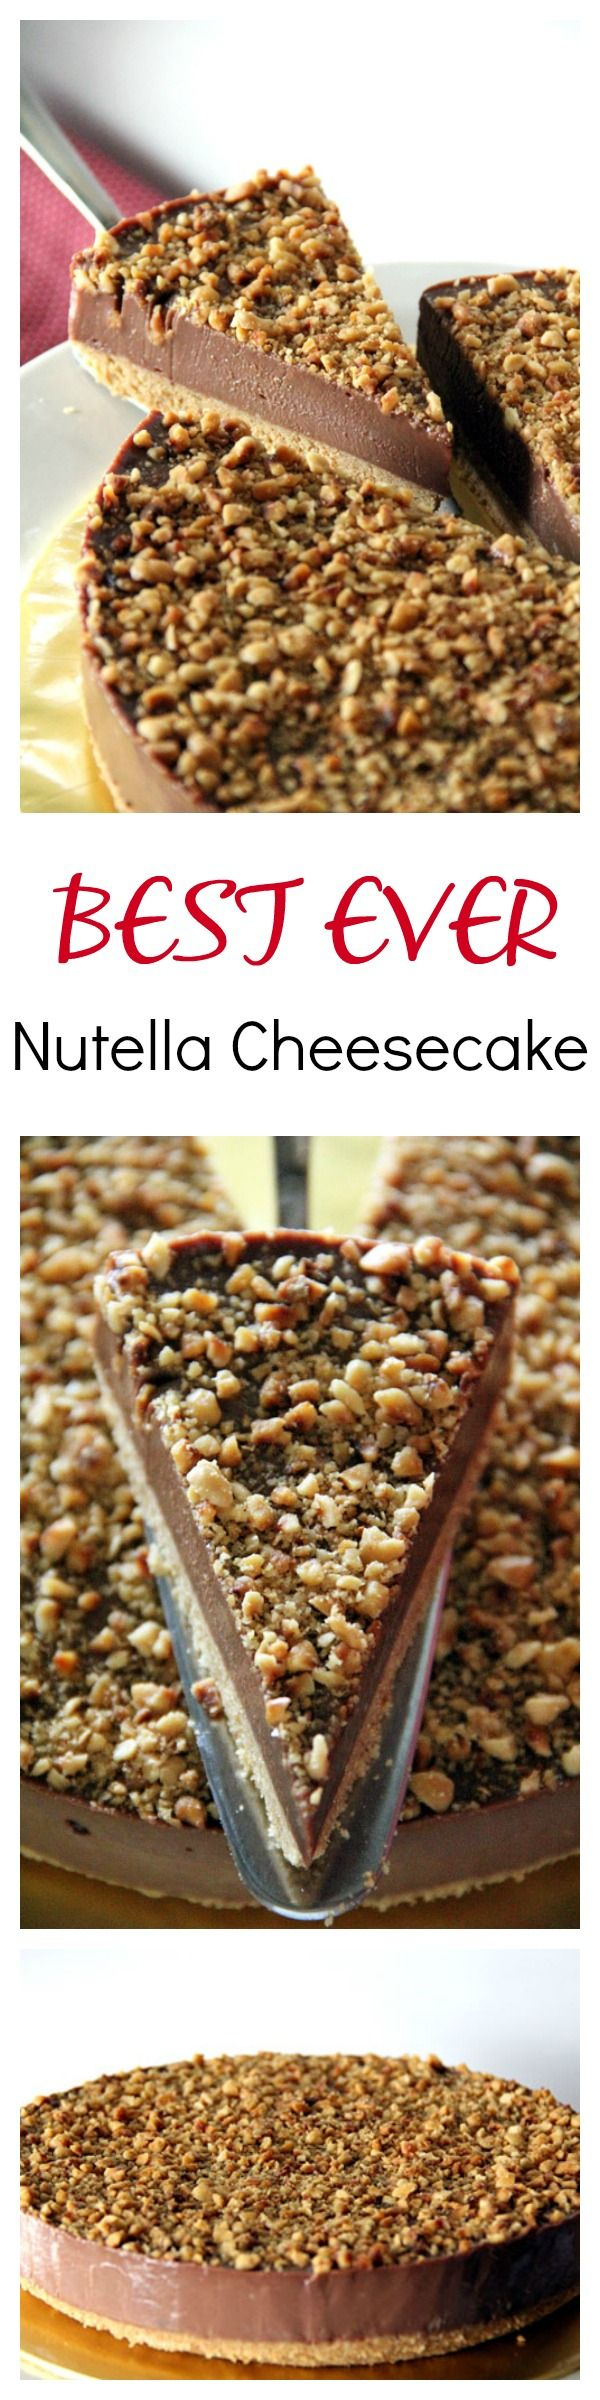 Best-ever NO BAKE Nutella Cheesecake with toasted hazelnut, to-die-for richest and creamiest